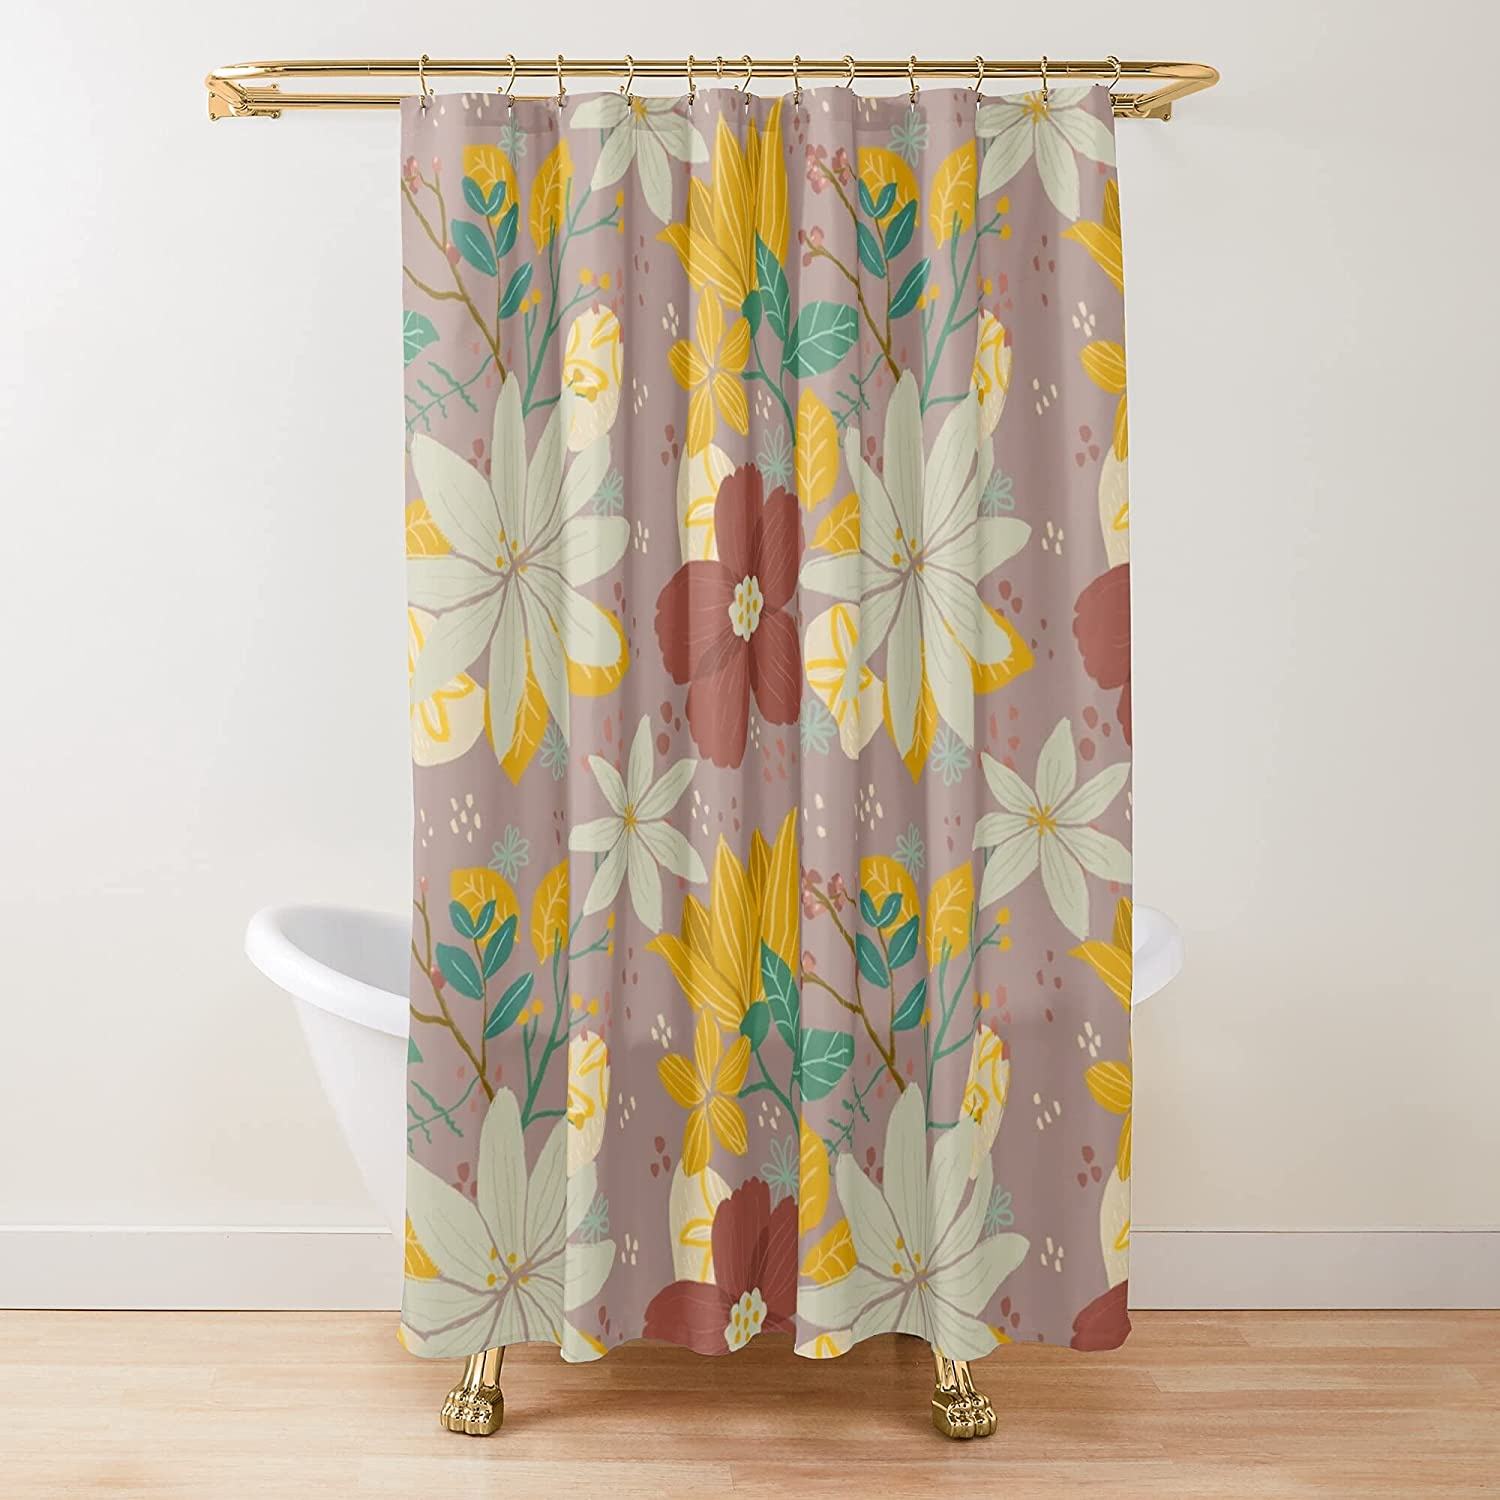 Botanic Mix excellence Fabric Large discharge sale Shower Curtains C Bathroom Printed Customize